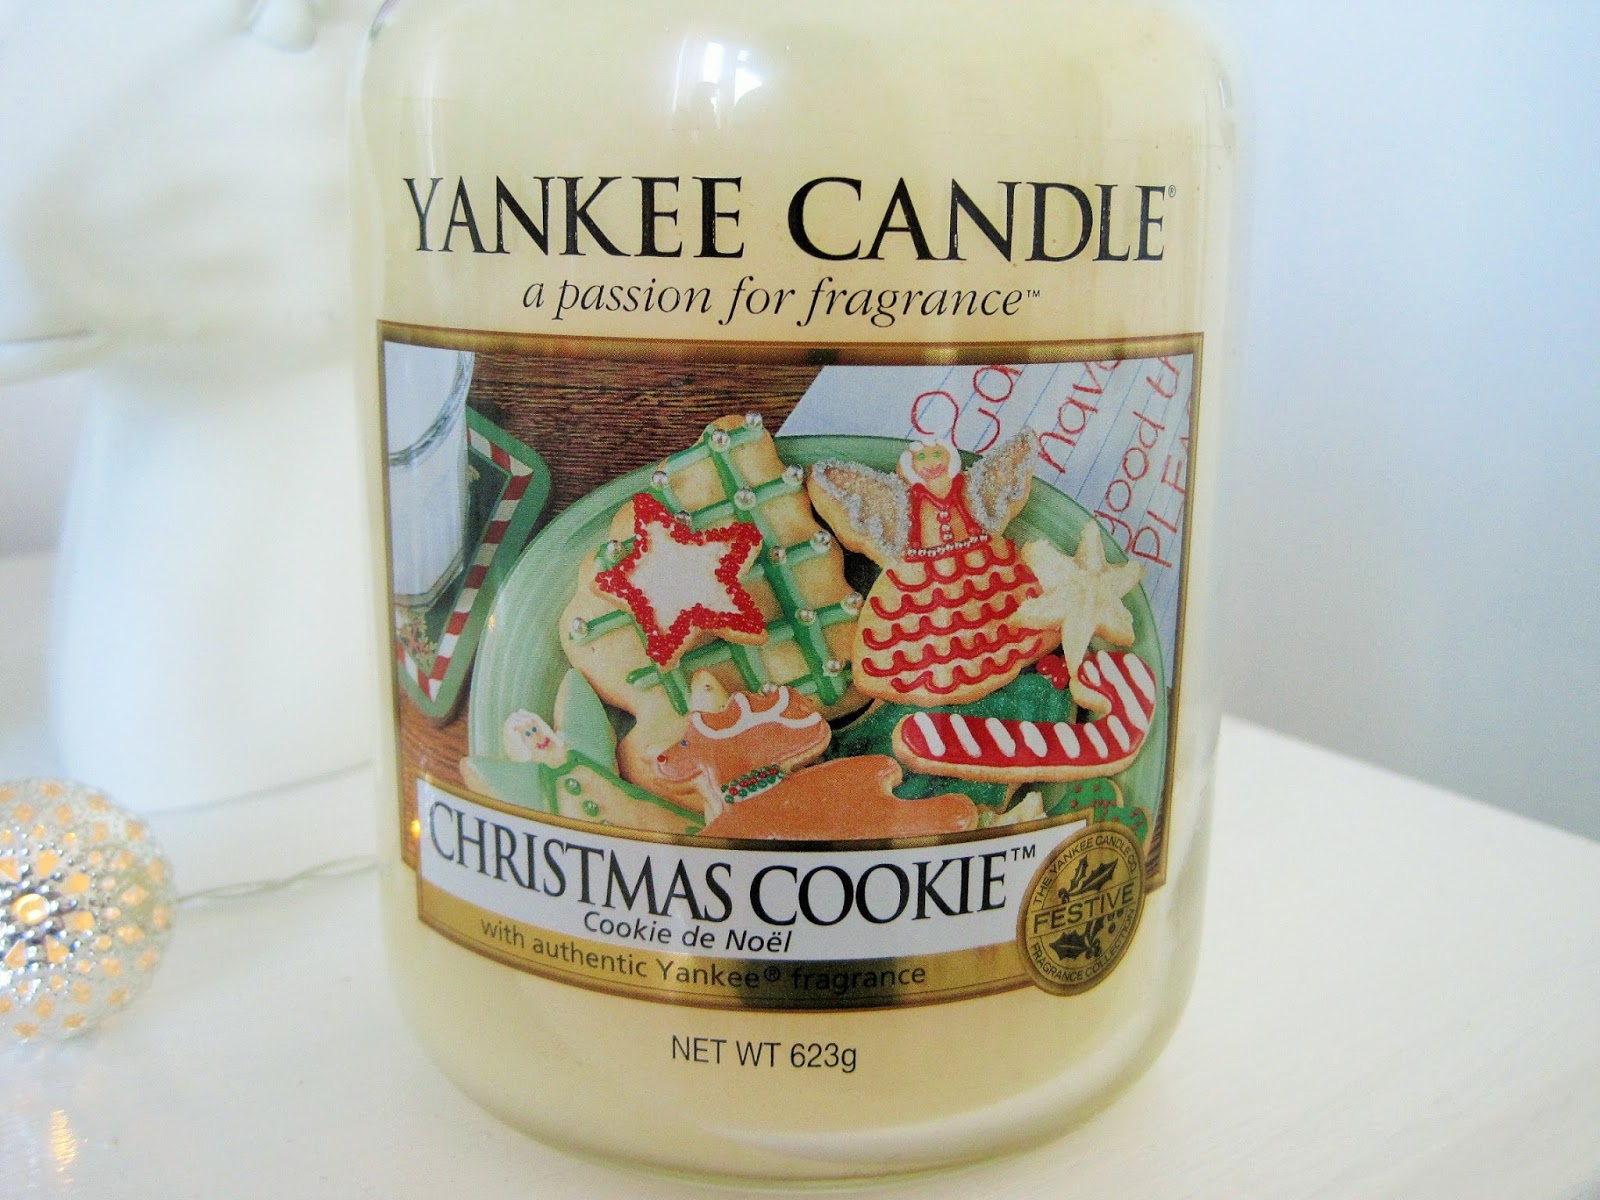 The Candle Itself Has A Really Strong Scent When Burning, It Literally  Makes My Whole House Smell Of Cookies And Sugar, So The Scent Throw Is Also  Brilliant ...